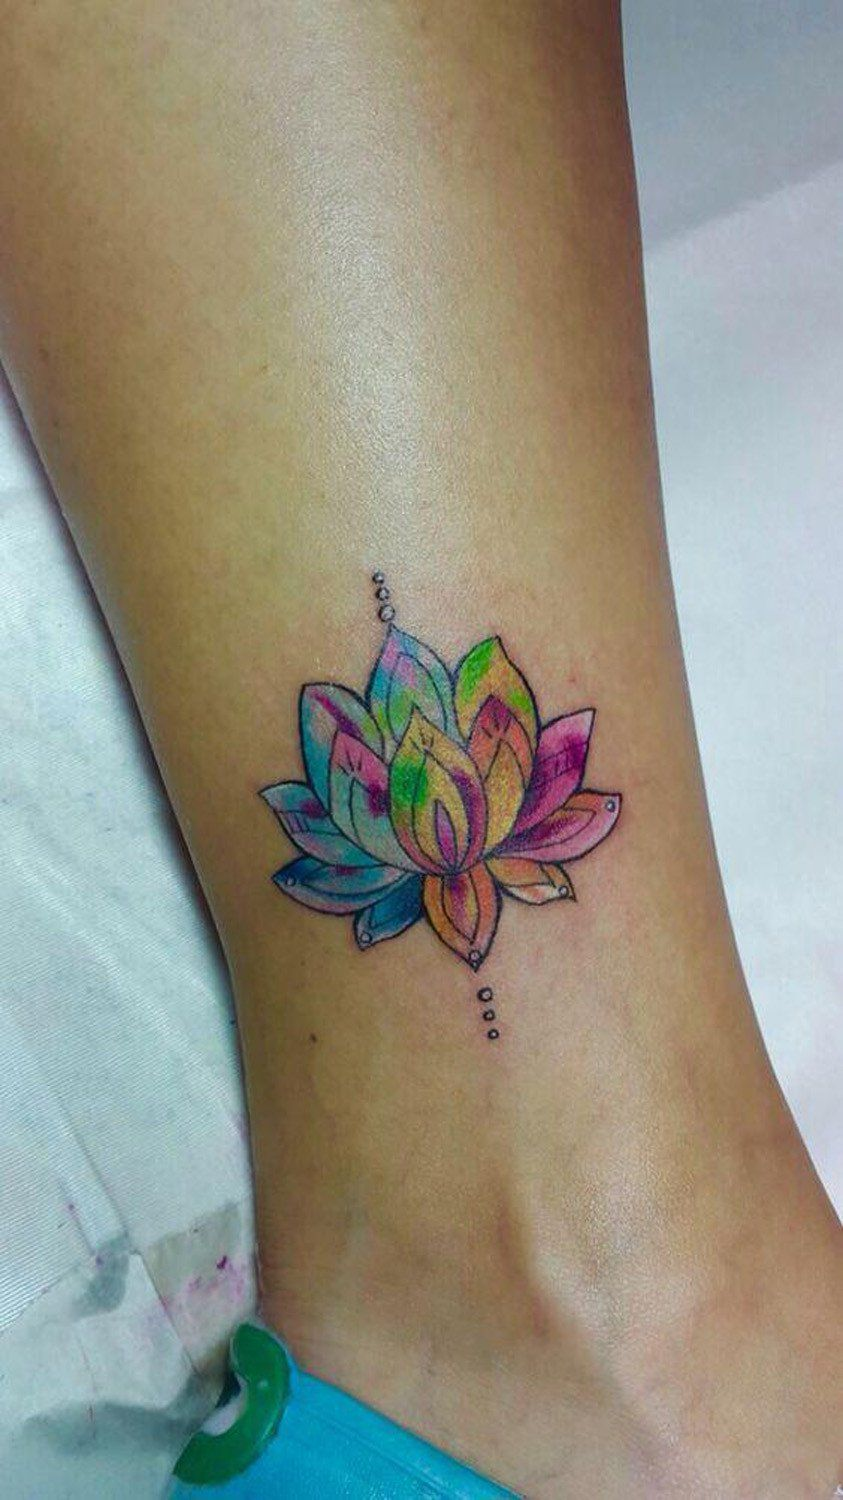 100+ Most Popular Lotus Tattoos Ideas for Women Flower